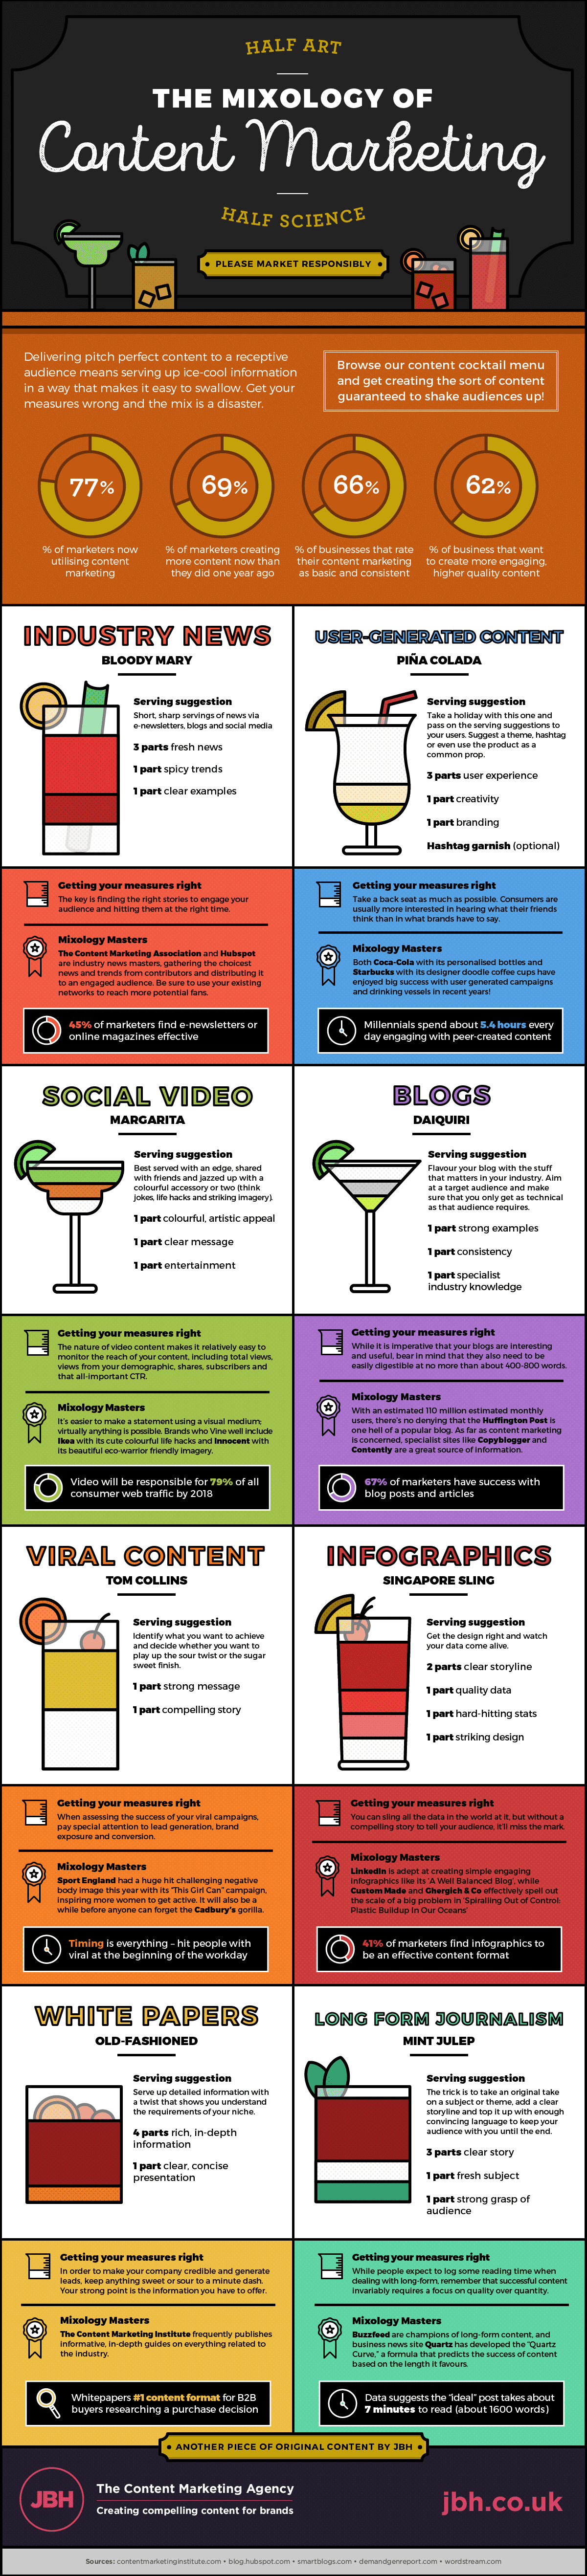 Mixology of Content Marketing